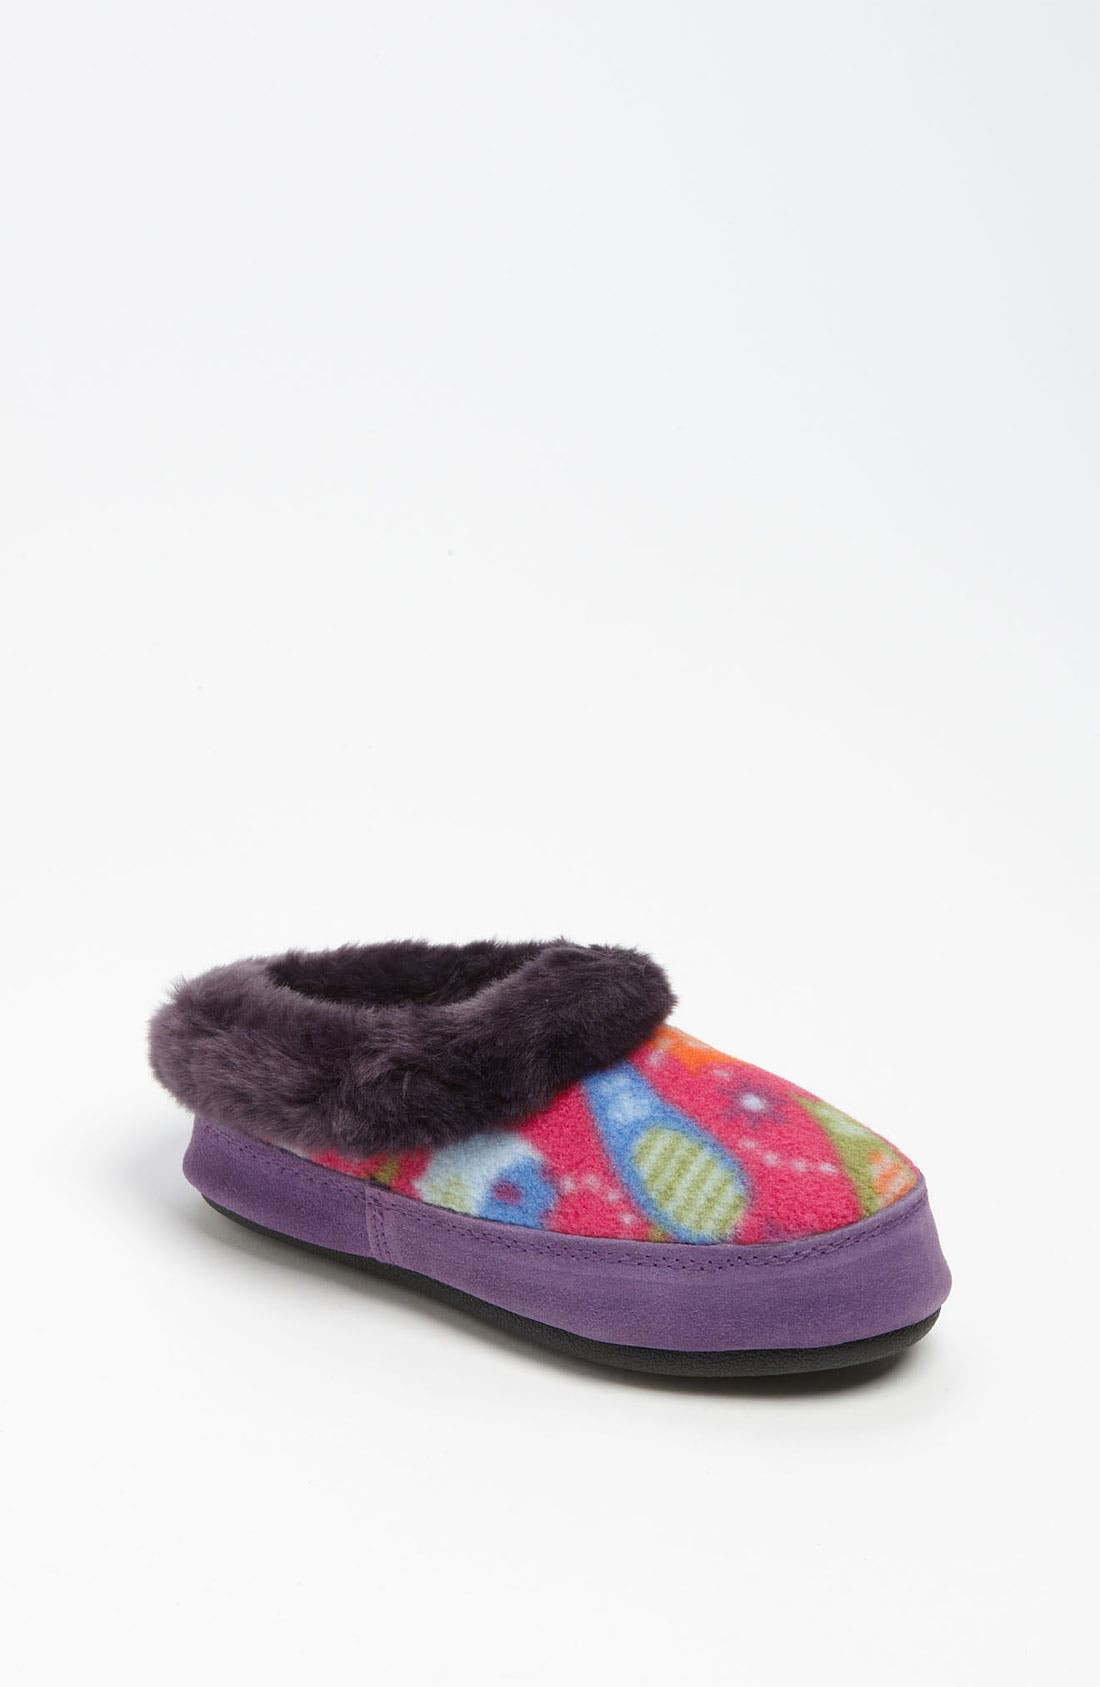 Main Image - Acorn 'Hopscotch' Slipper (Toddler, Little Kid & Big Kid)